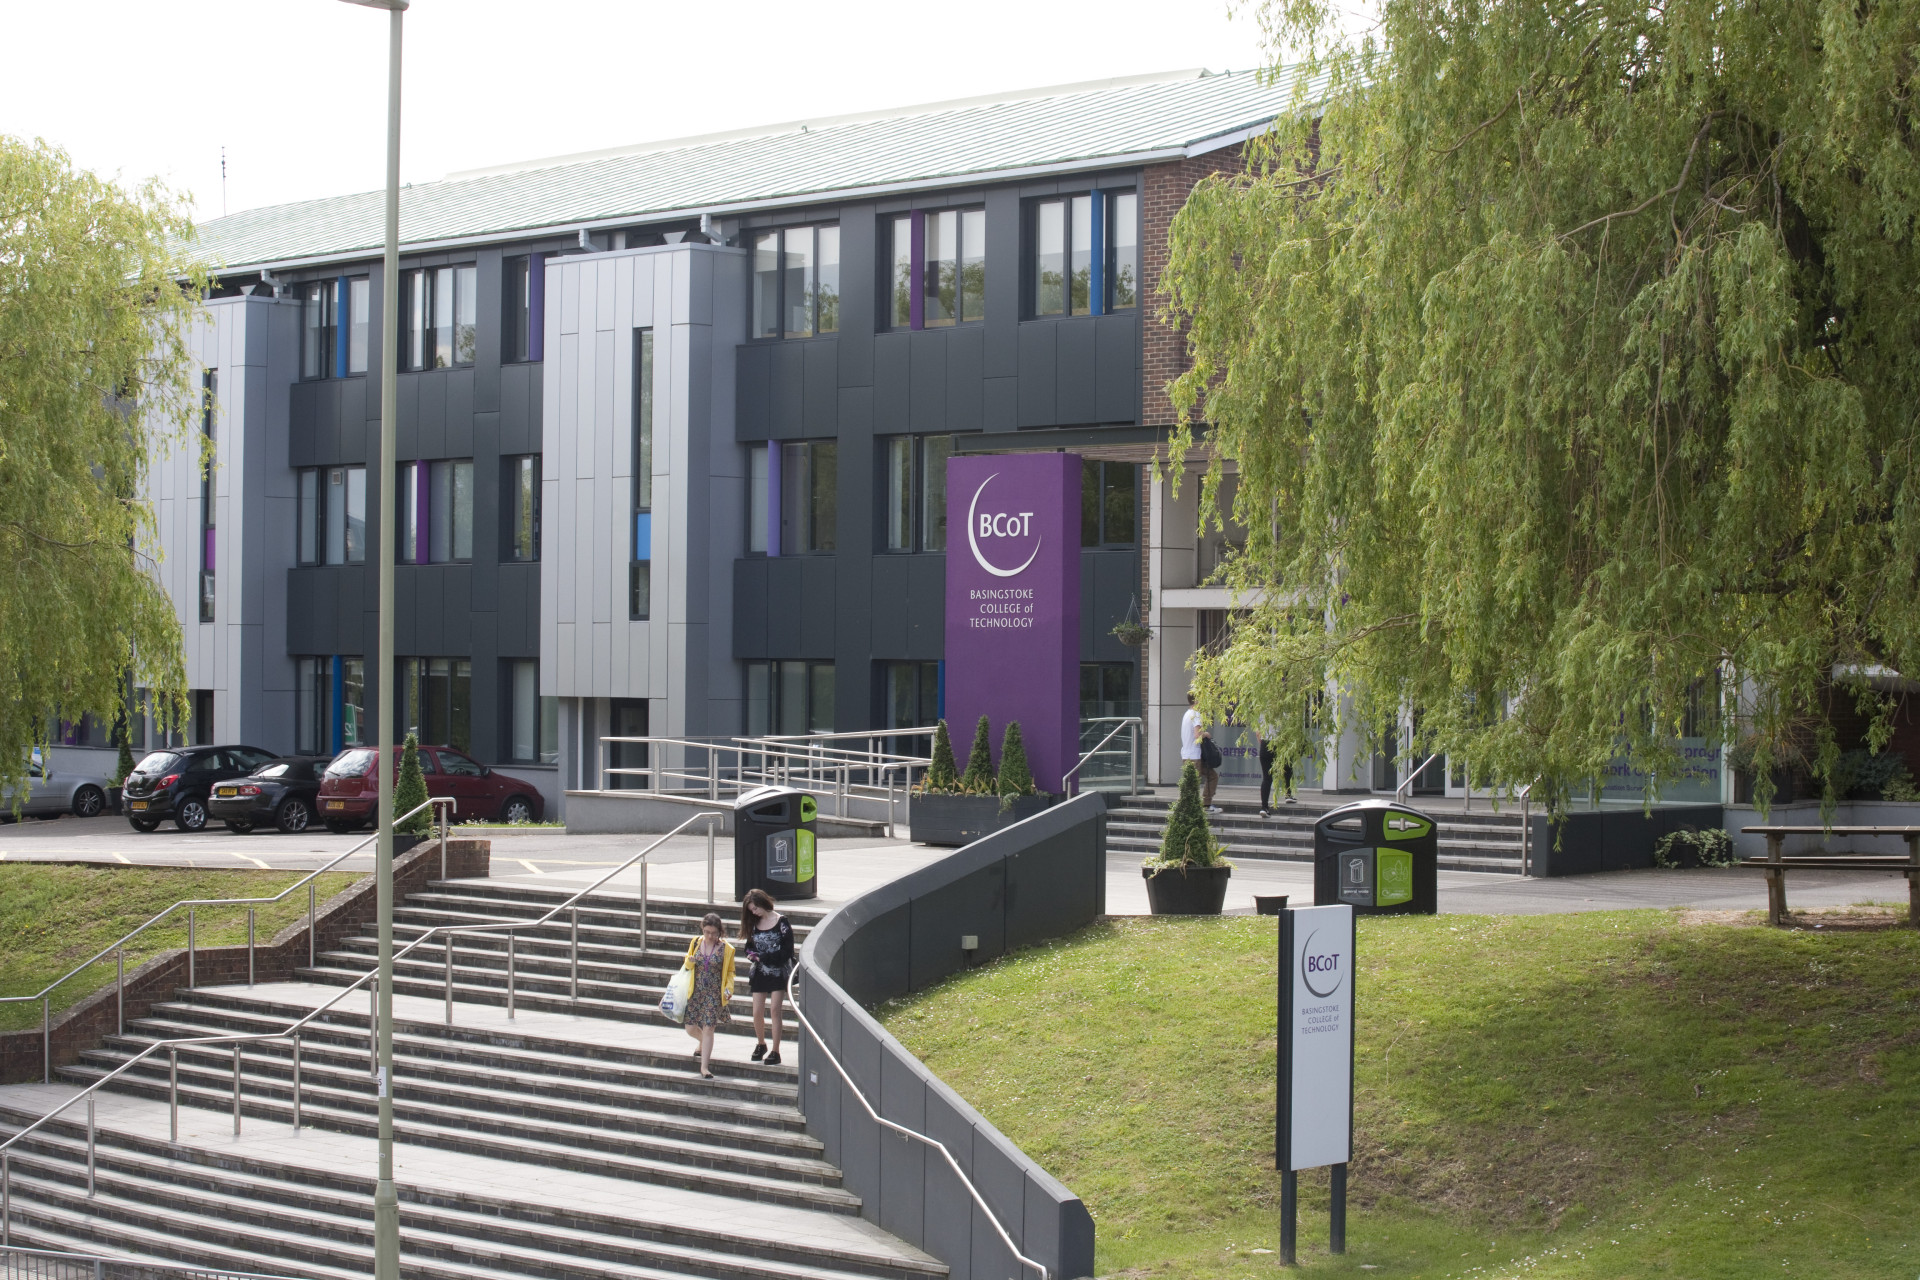 BCoT to merge with Alton college?